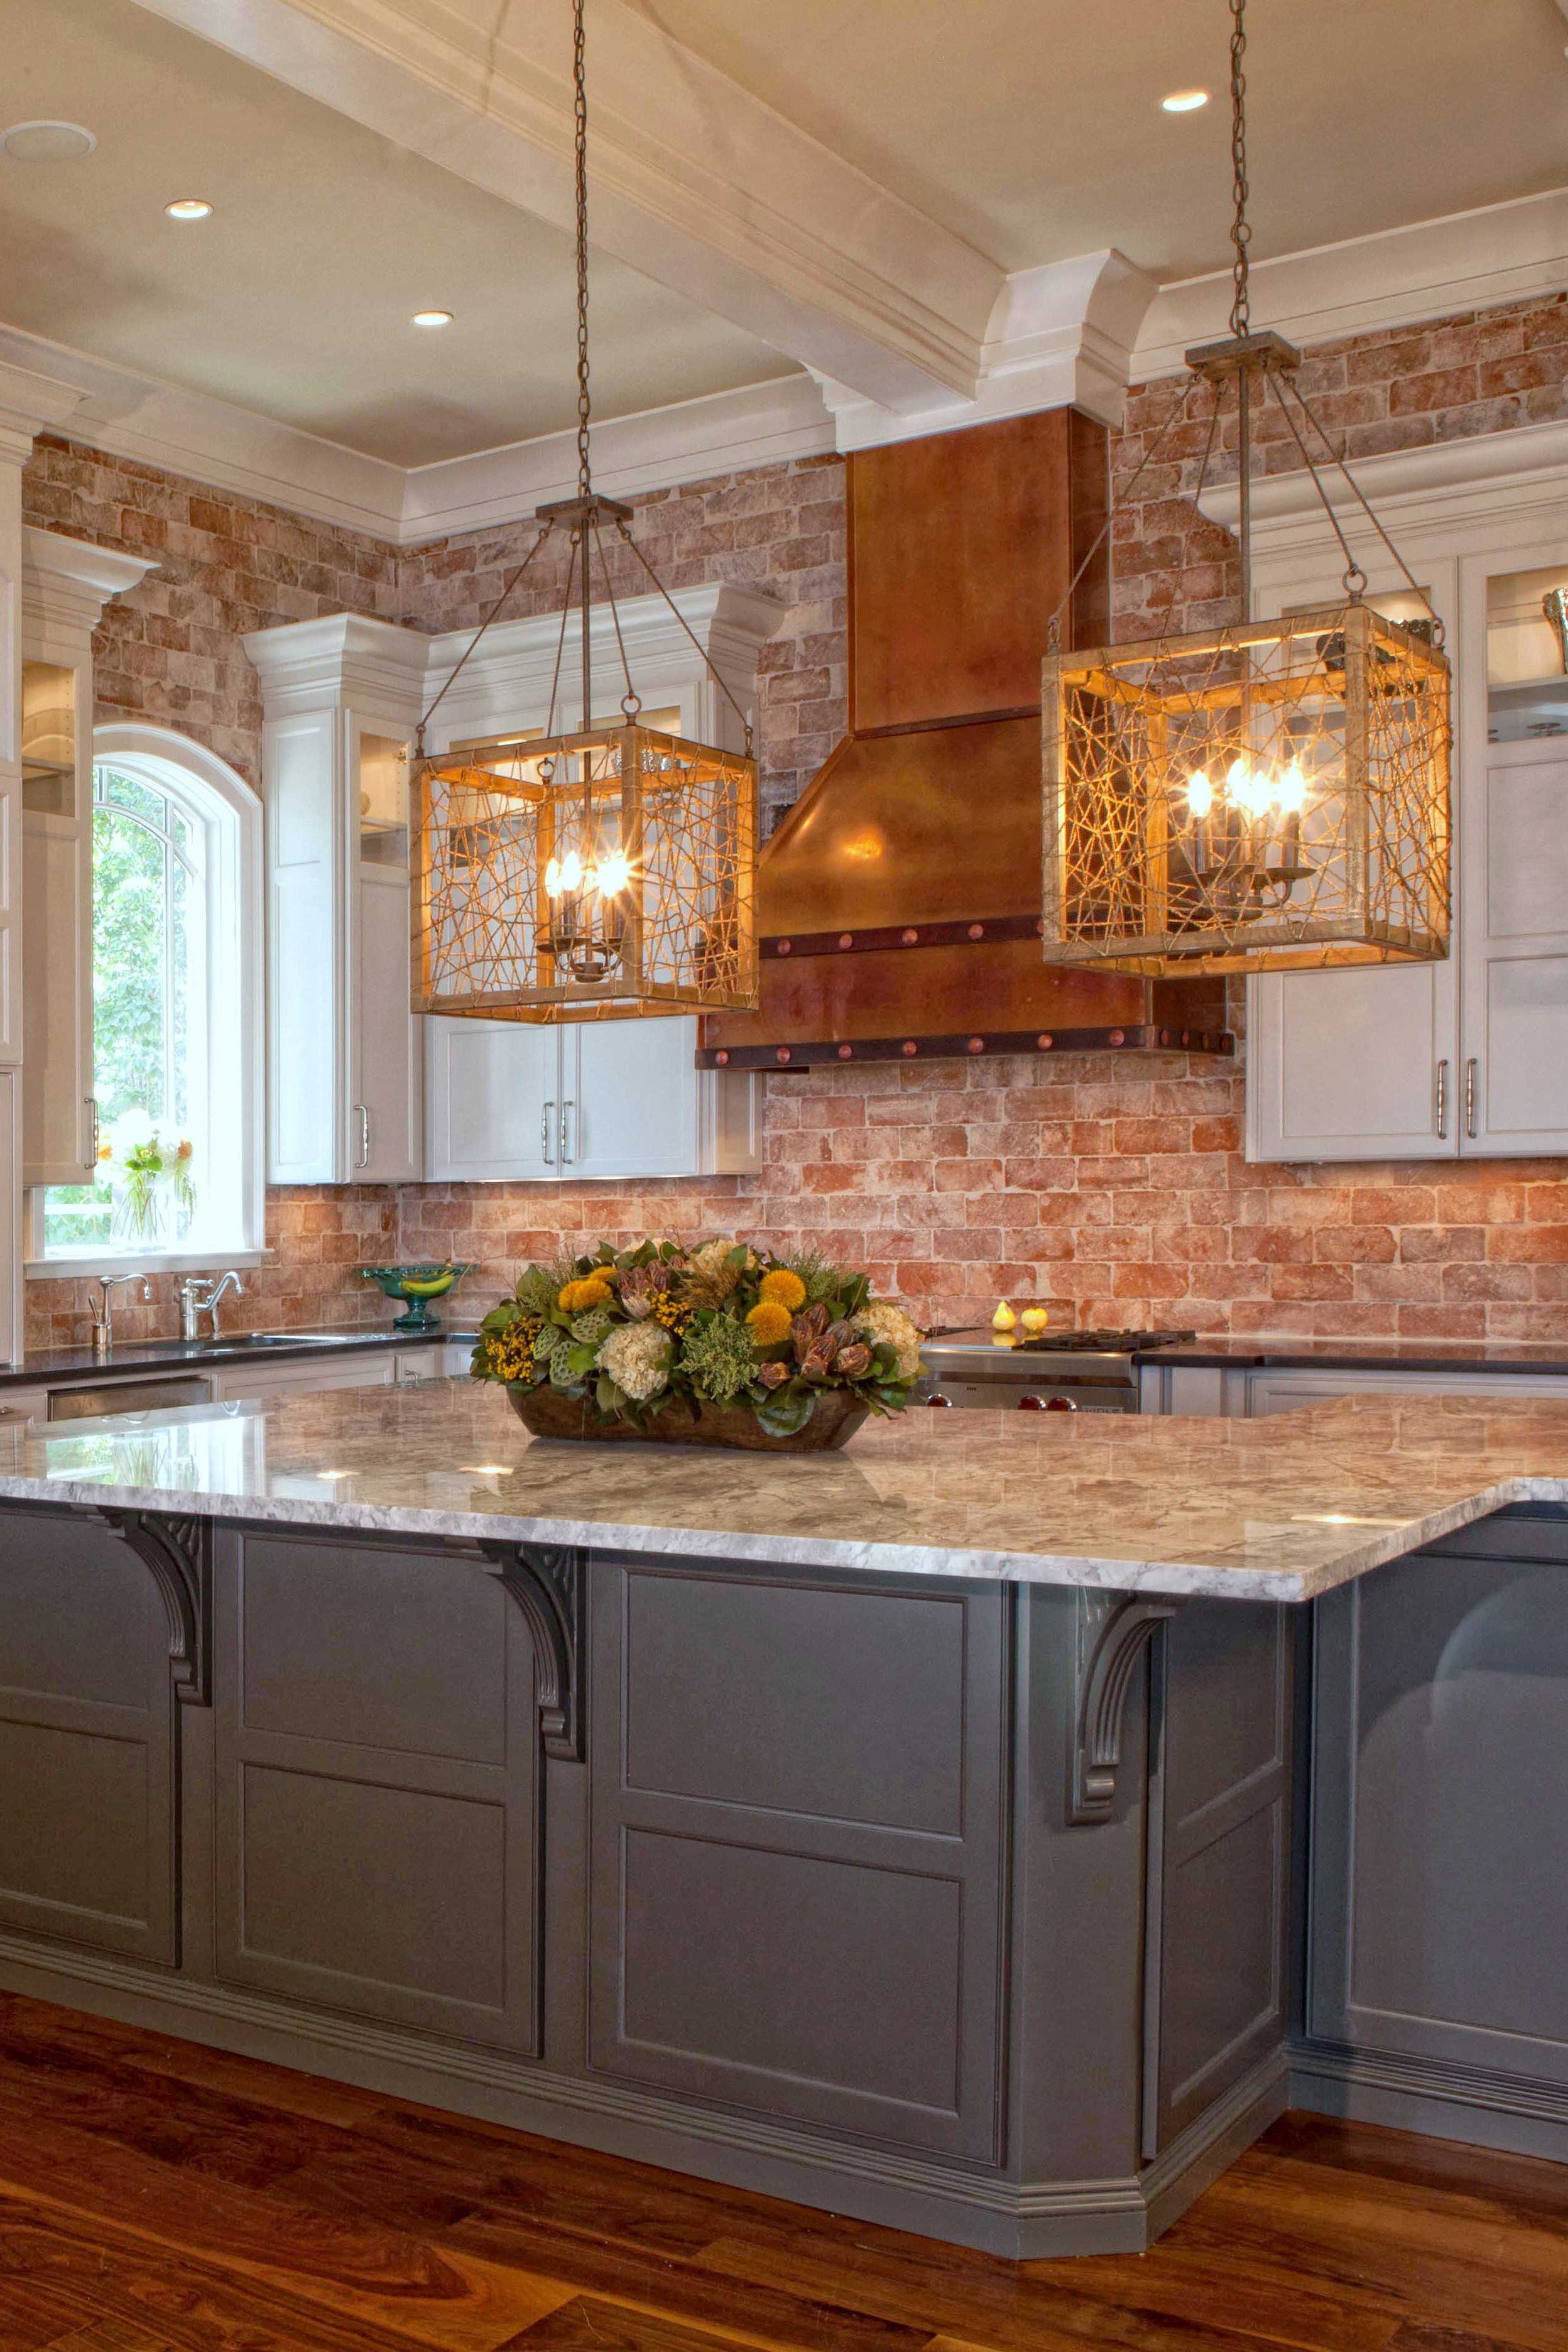 The Copper Oven Hood Is The Main Focal Point With The Beautiful